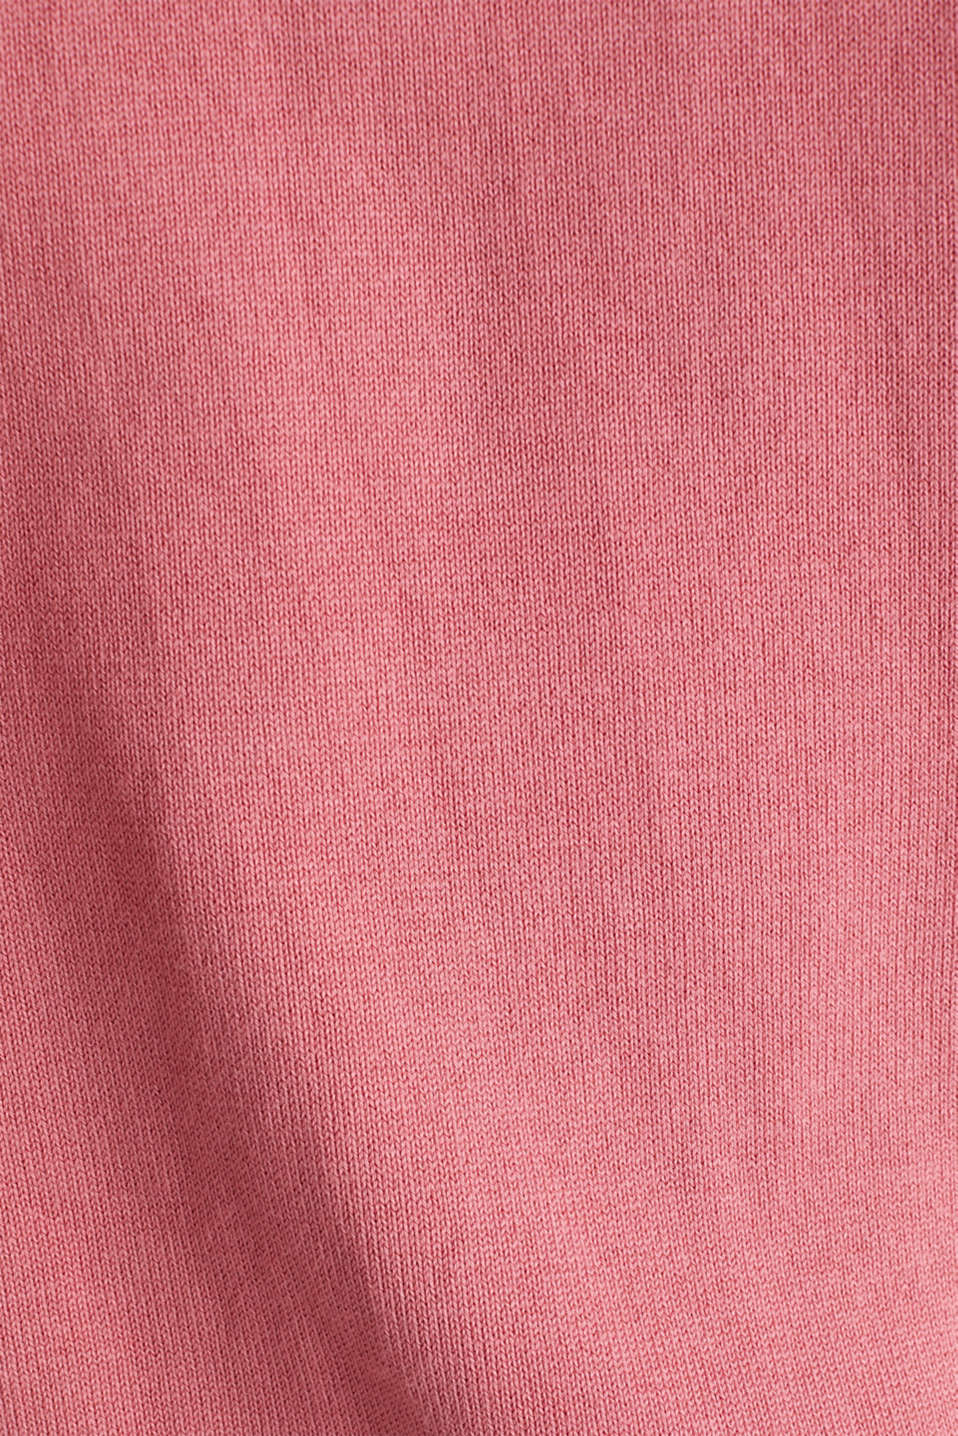 Jumper with sporty stripes, BLUSH 3, detail image number 4